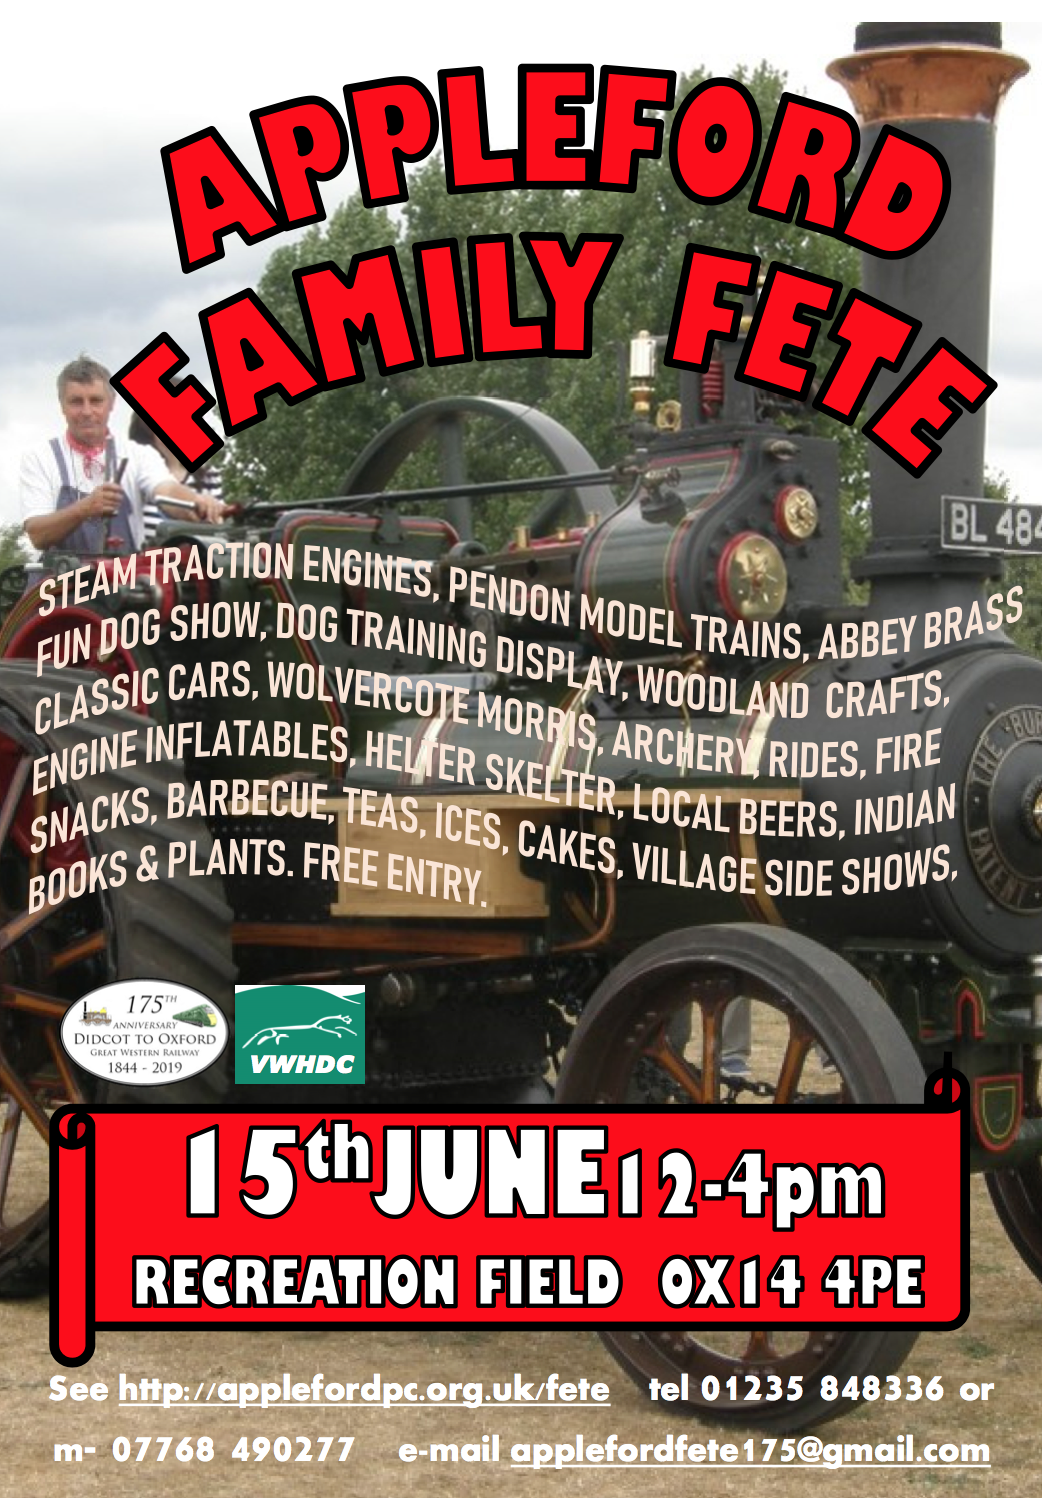 Appleford Family Fete poster featuring a steam engine, with words written over the top to describe what to expect dueing the day.